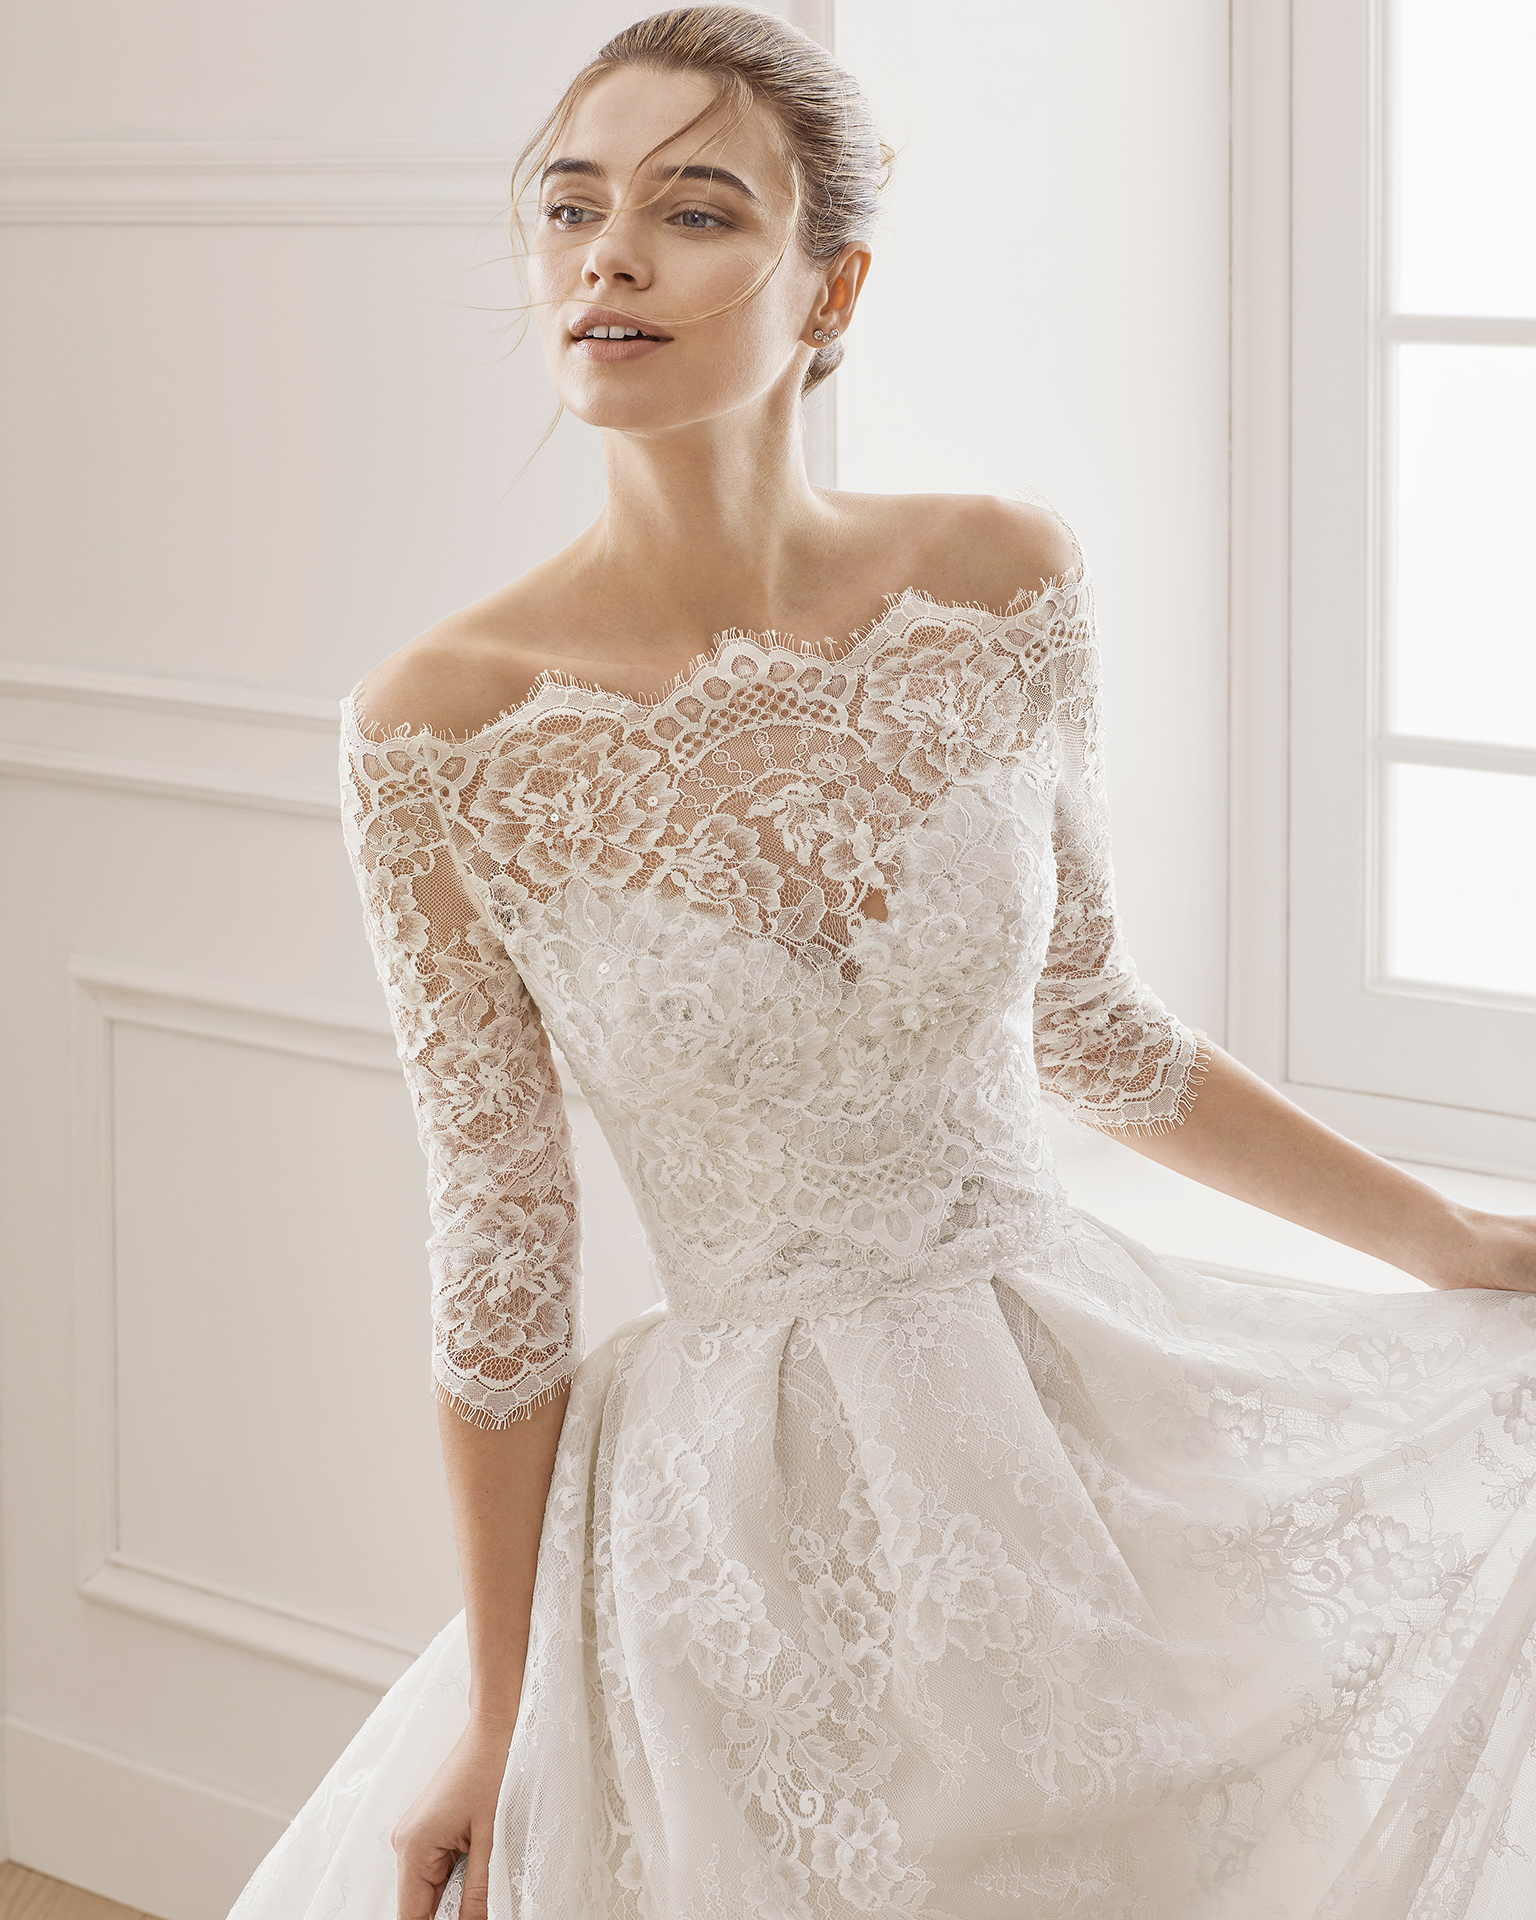 Robe de mariée style trapèze en dentelle et pierreries. Bustier. Disponible en couleur naturelle/nude. Collection AIRE BARCELONA 2019.